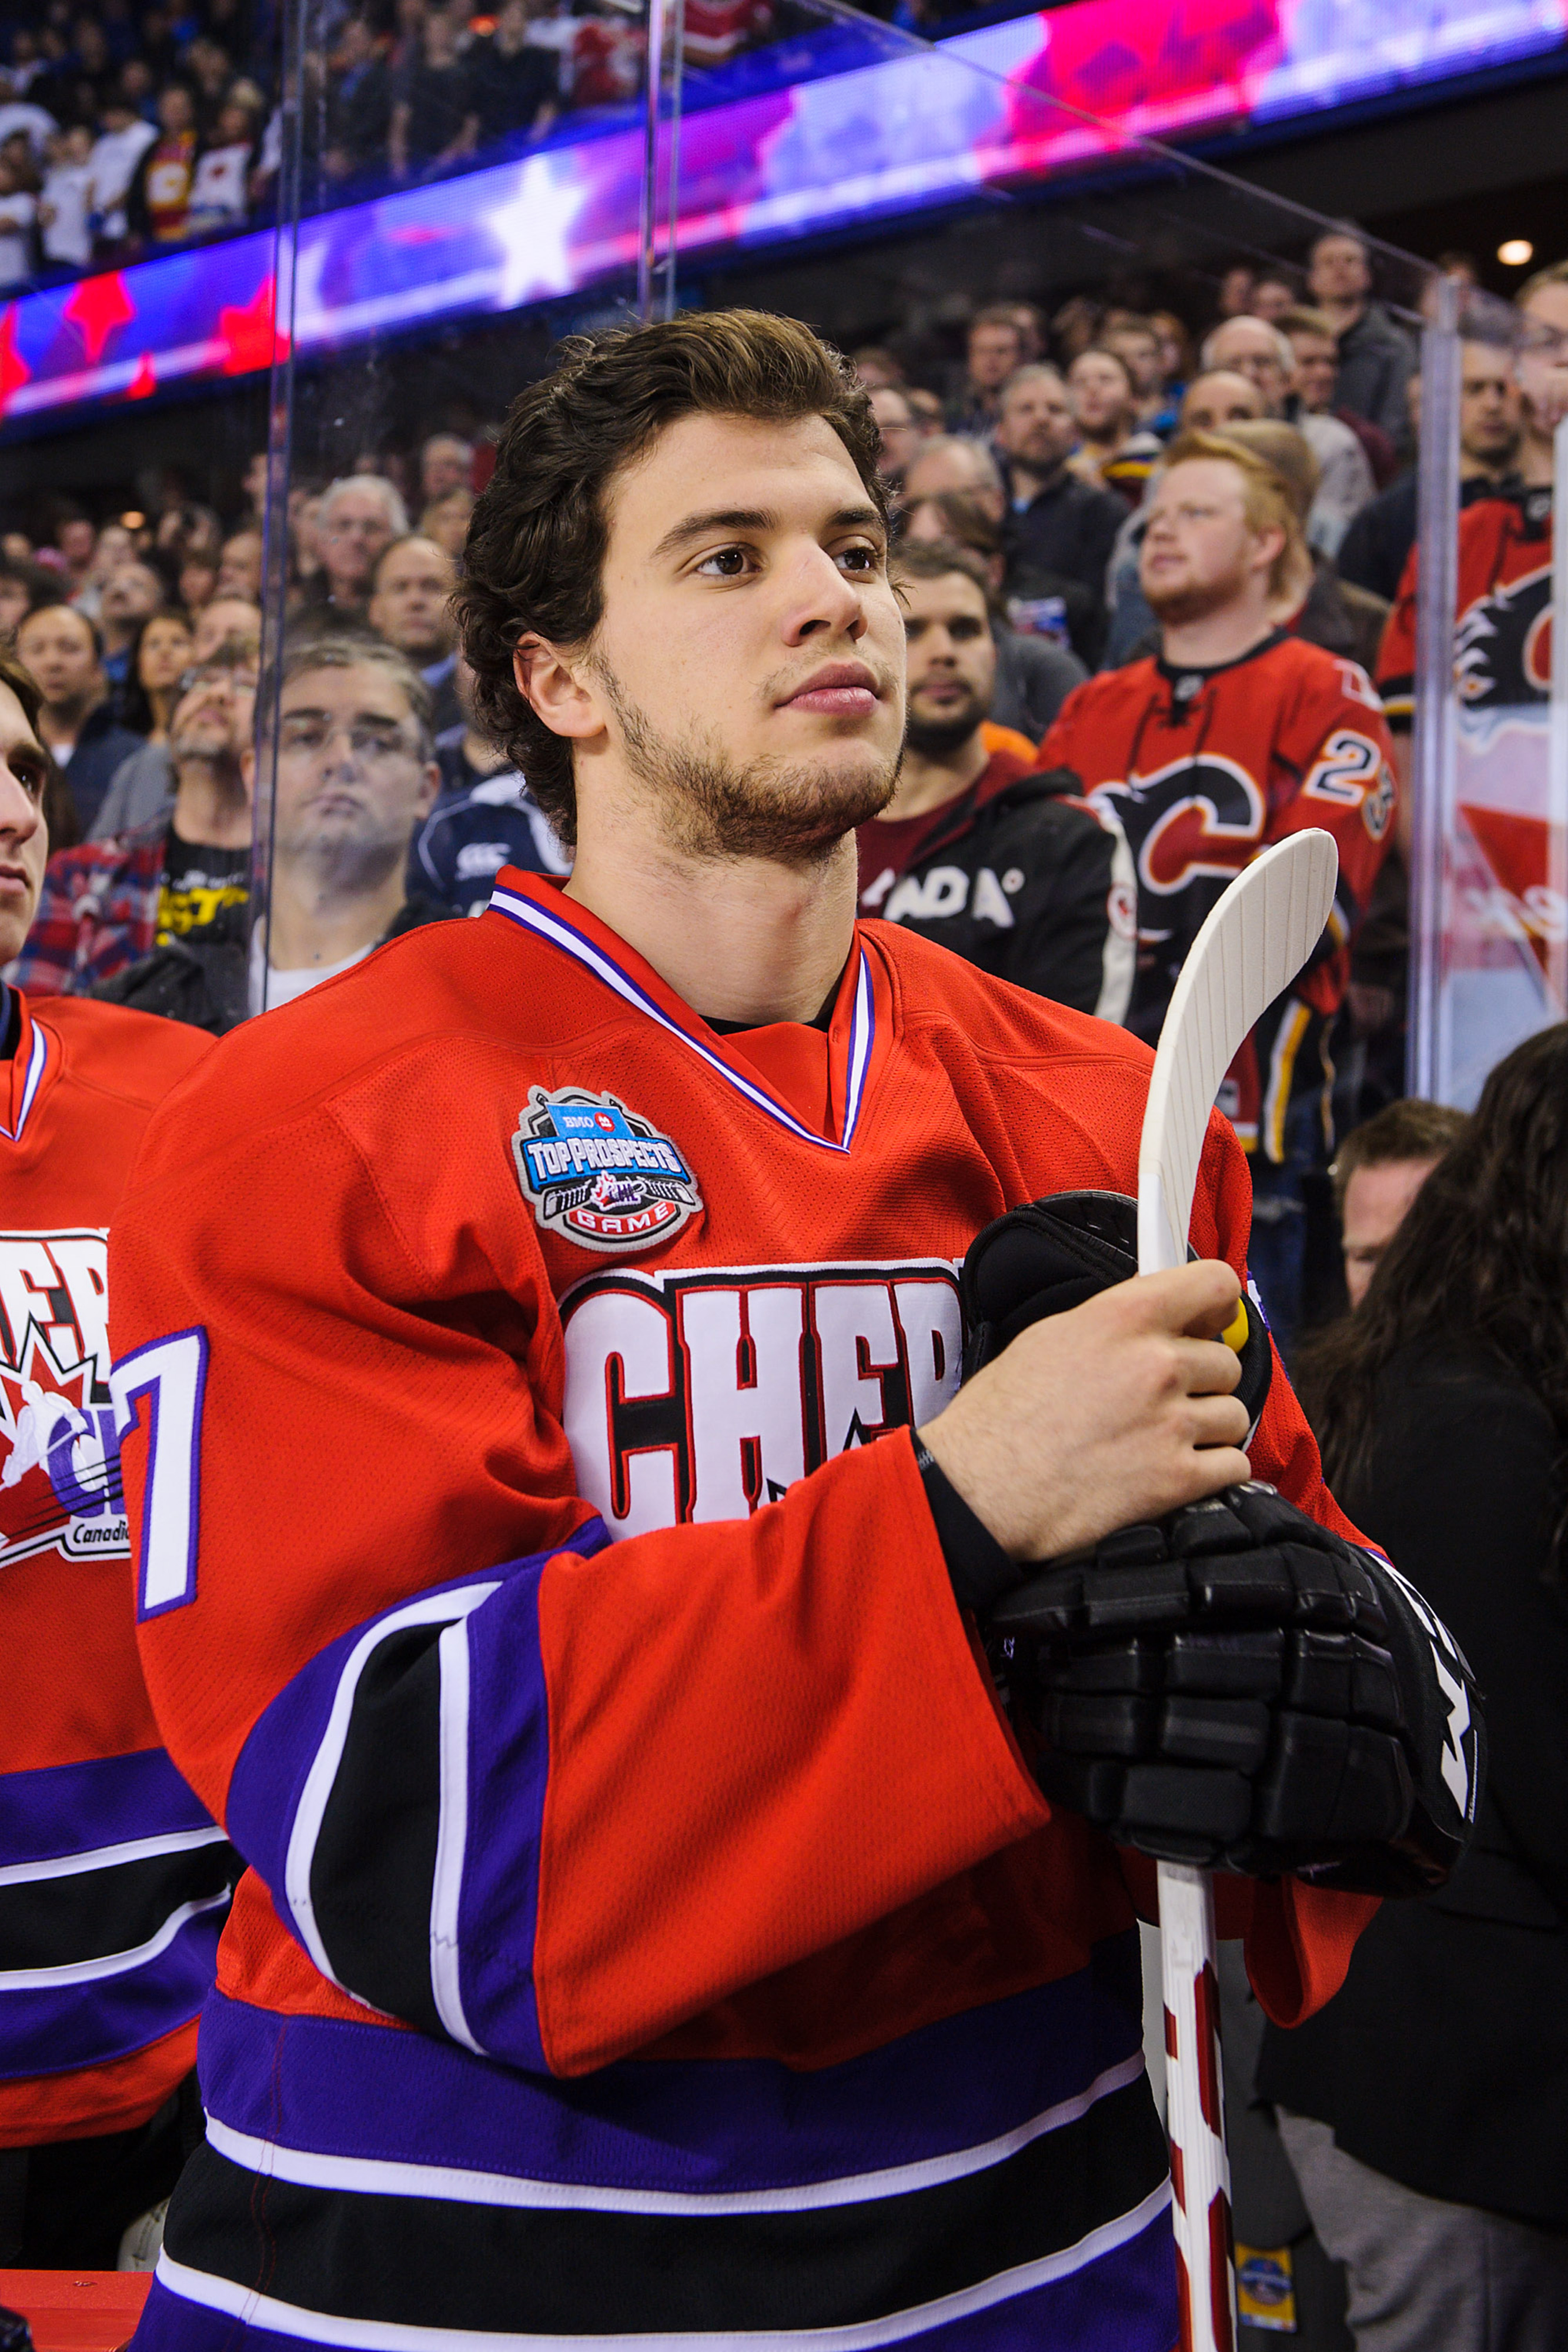 Anthony DeAngelo, one of the most written about prospects in this year's draft.  And not for good things, either.